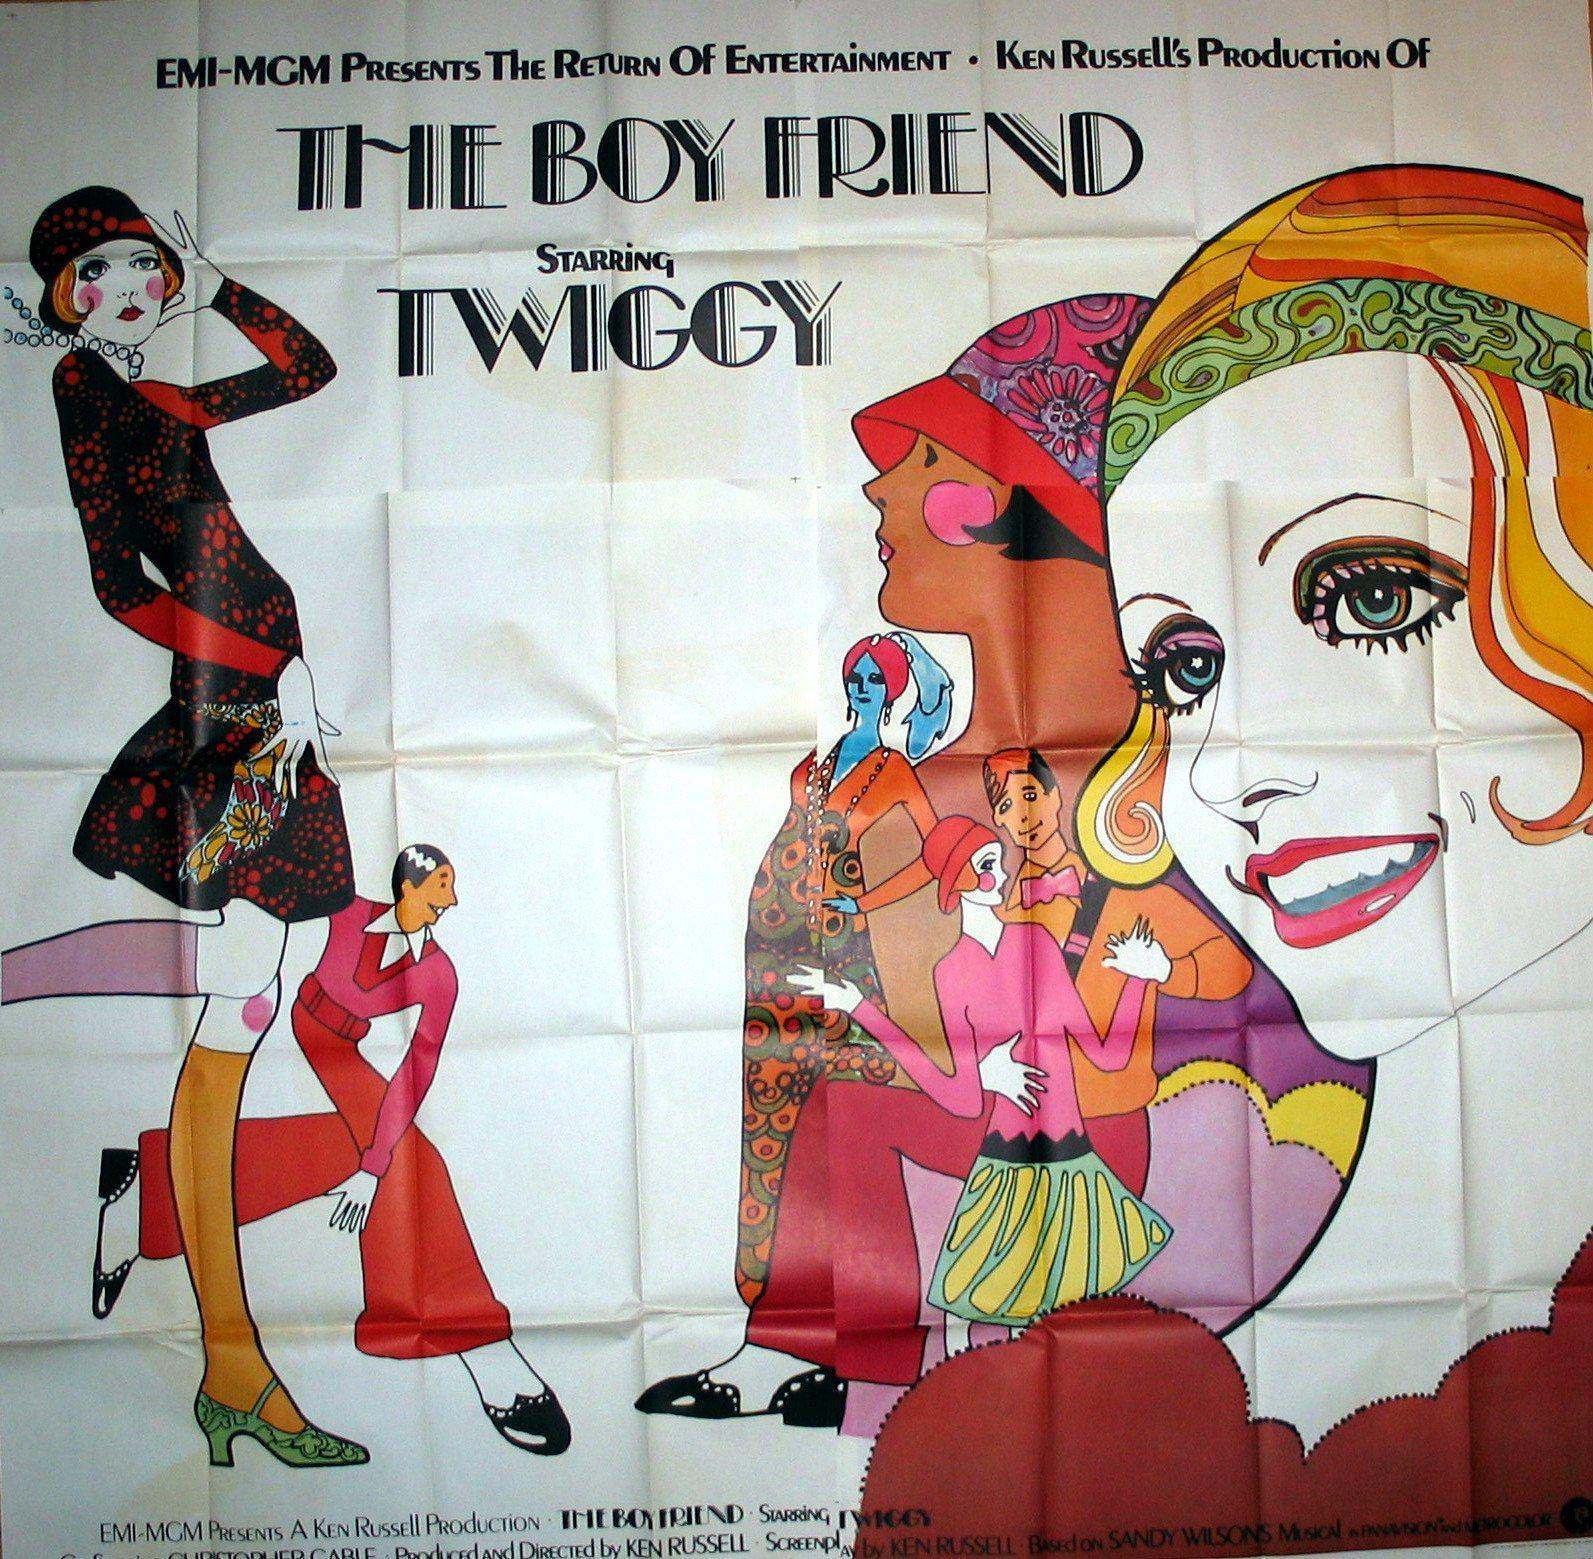 The Boy Friend (The Boyfriend) 6 Sheet (81x81) Original Vintage Movie Poster